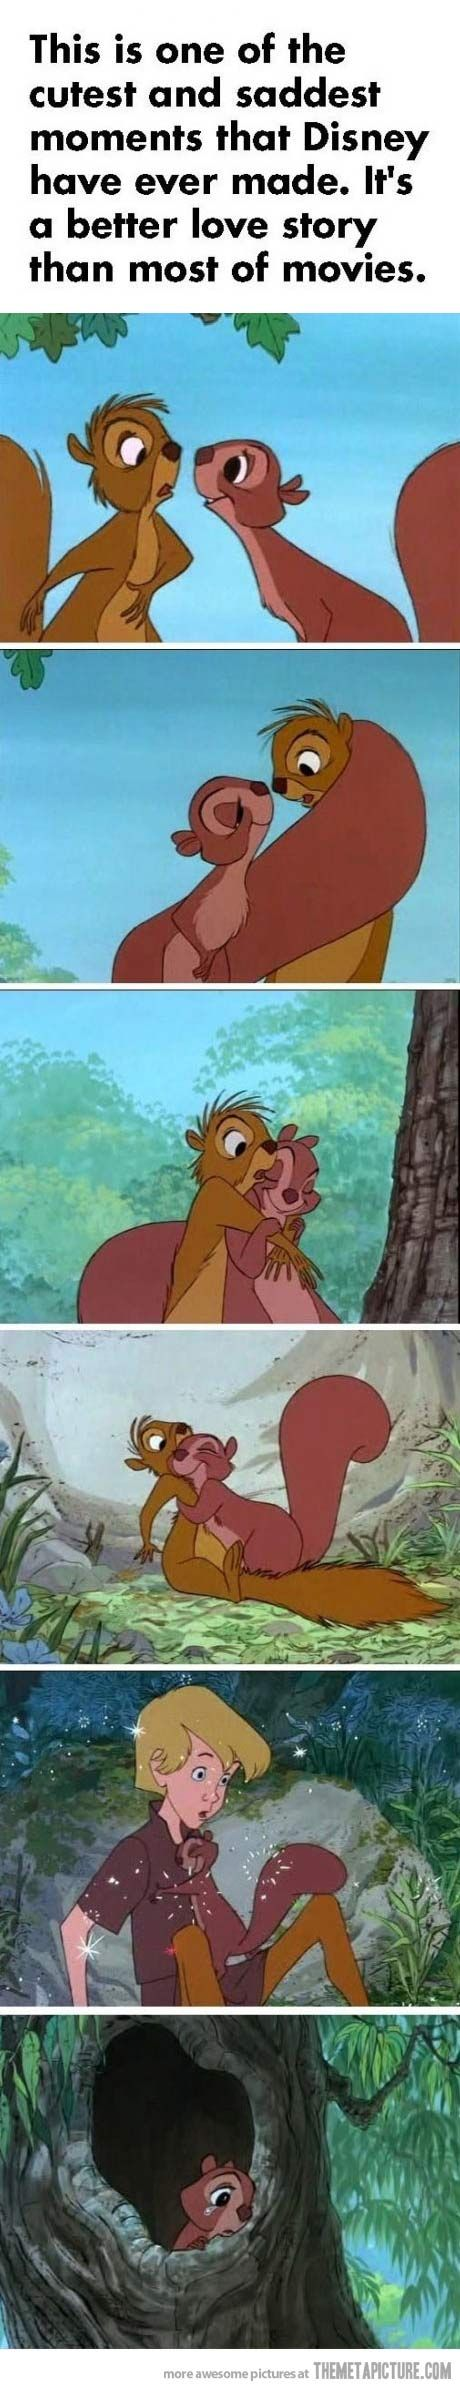 The cutest and saddest moment in Disney's history…It makes me so sad every time!